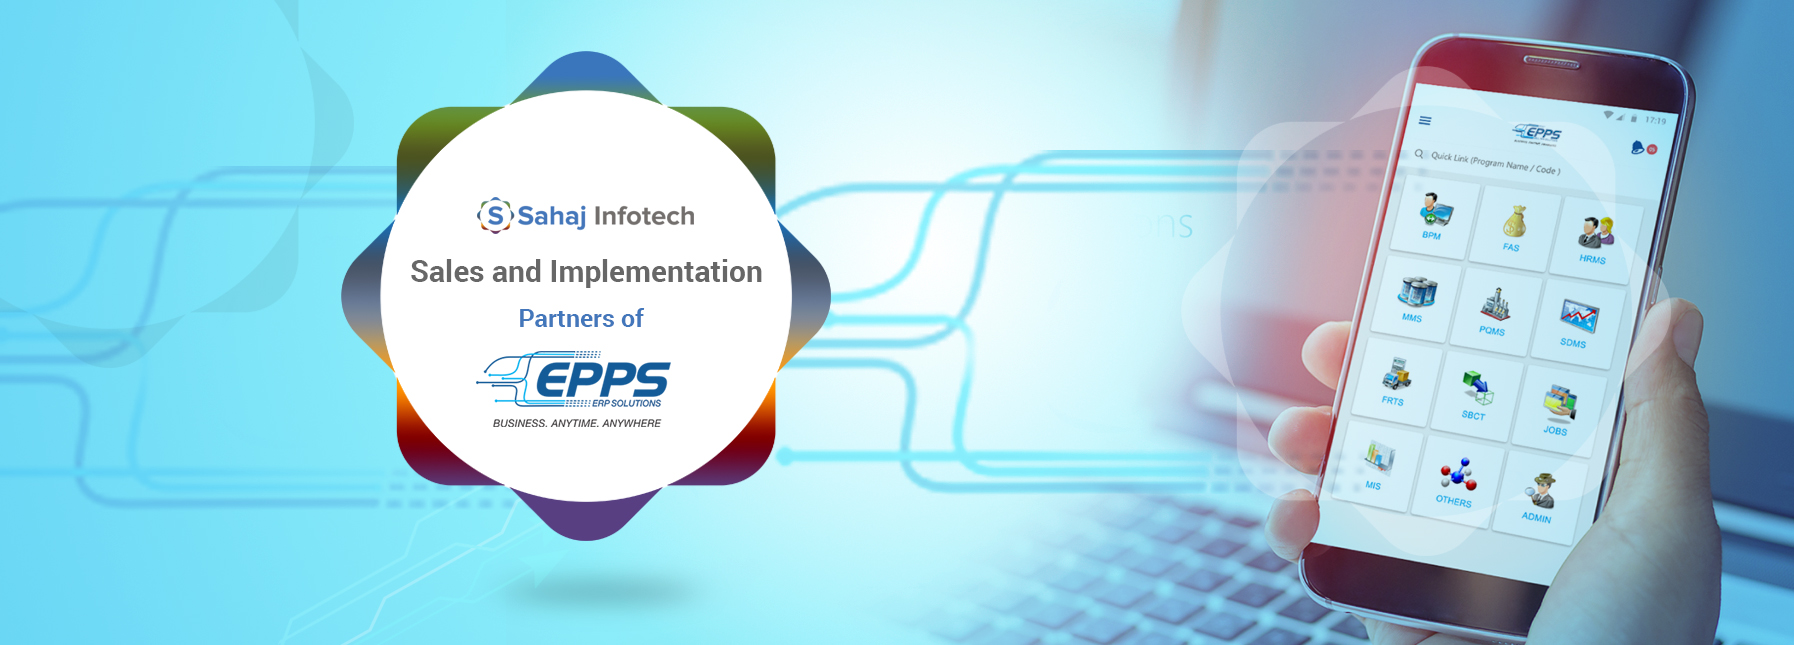 Sahaj Infotech Sales and Implementation EPPS Infotech